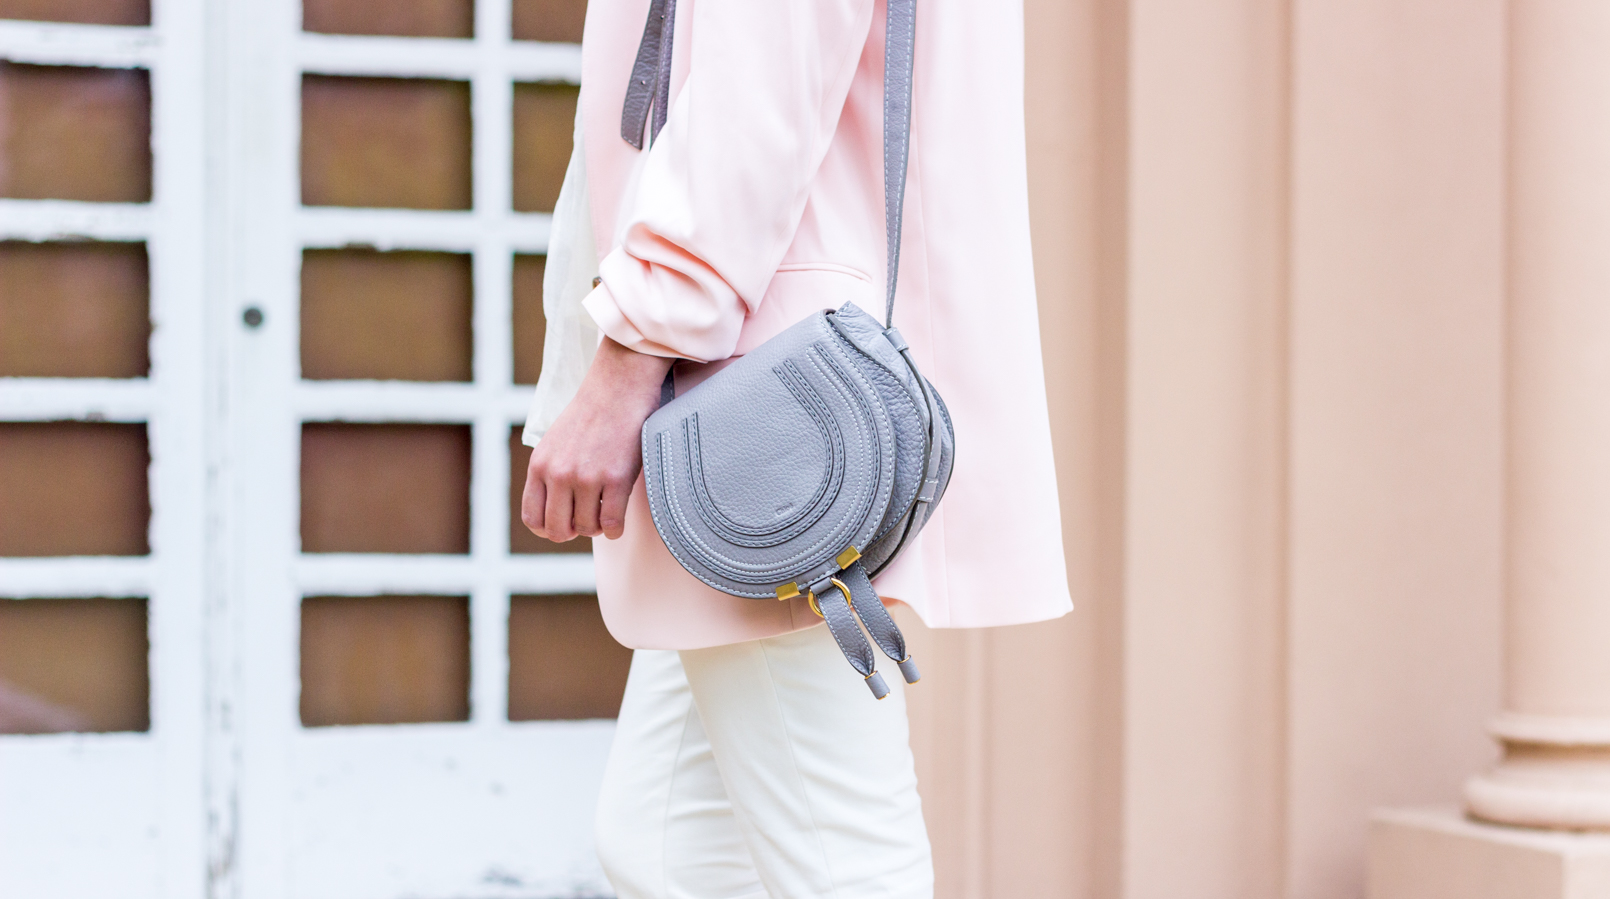 Le Fashionaire Are nudes the new black? blogger catarine martins white zara trousers oversized pale pink hm blazer mini marcie gray chloe leather bag 0800F EN